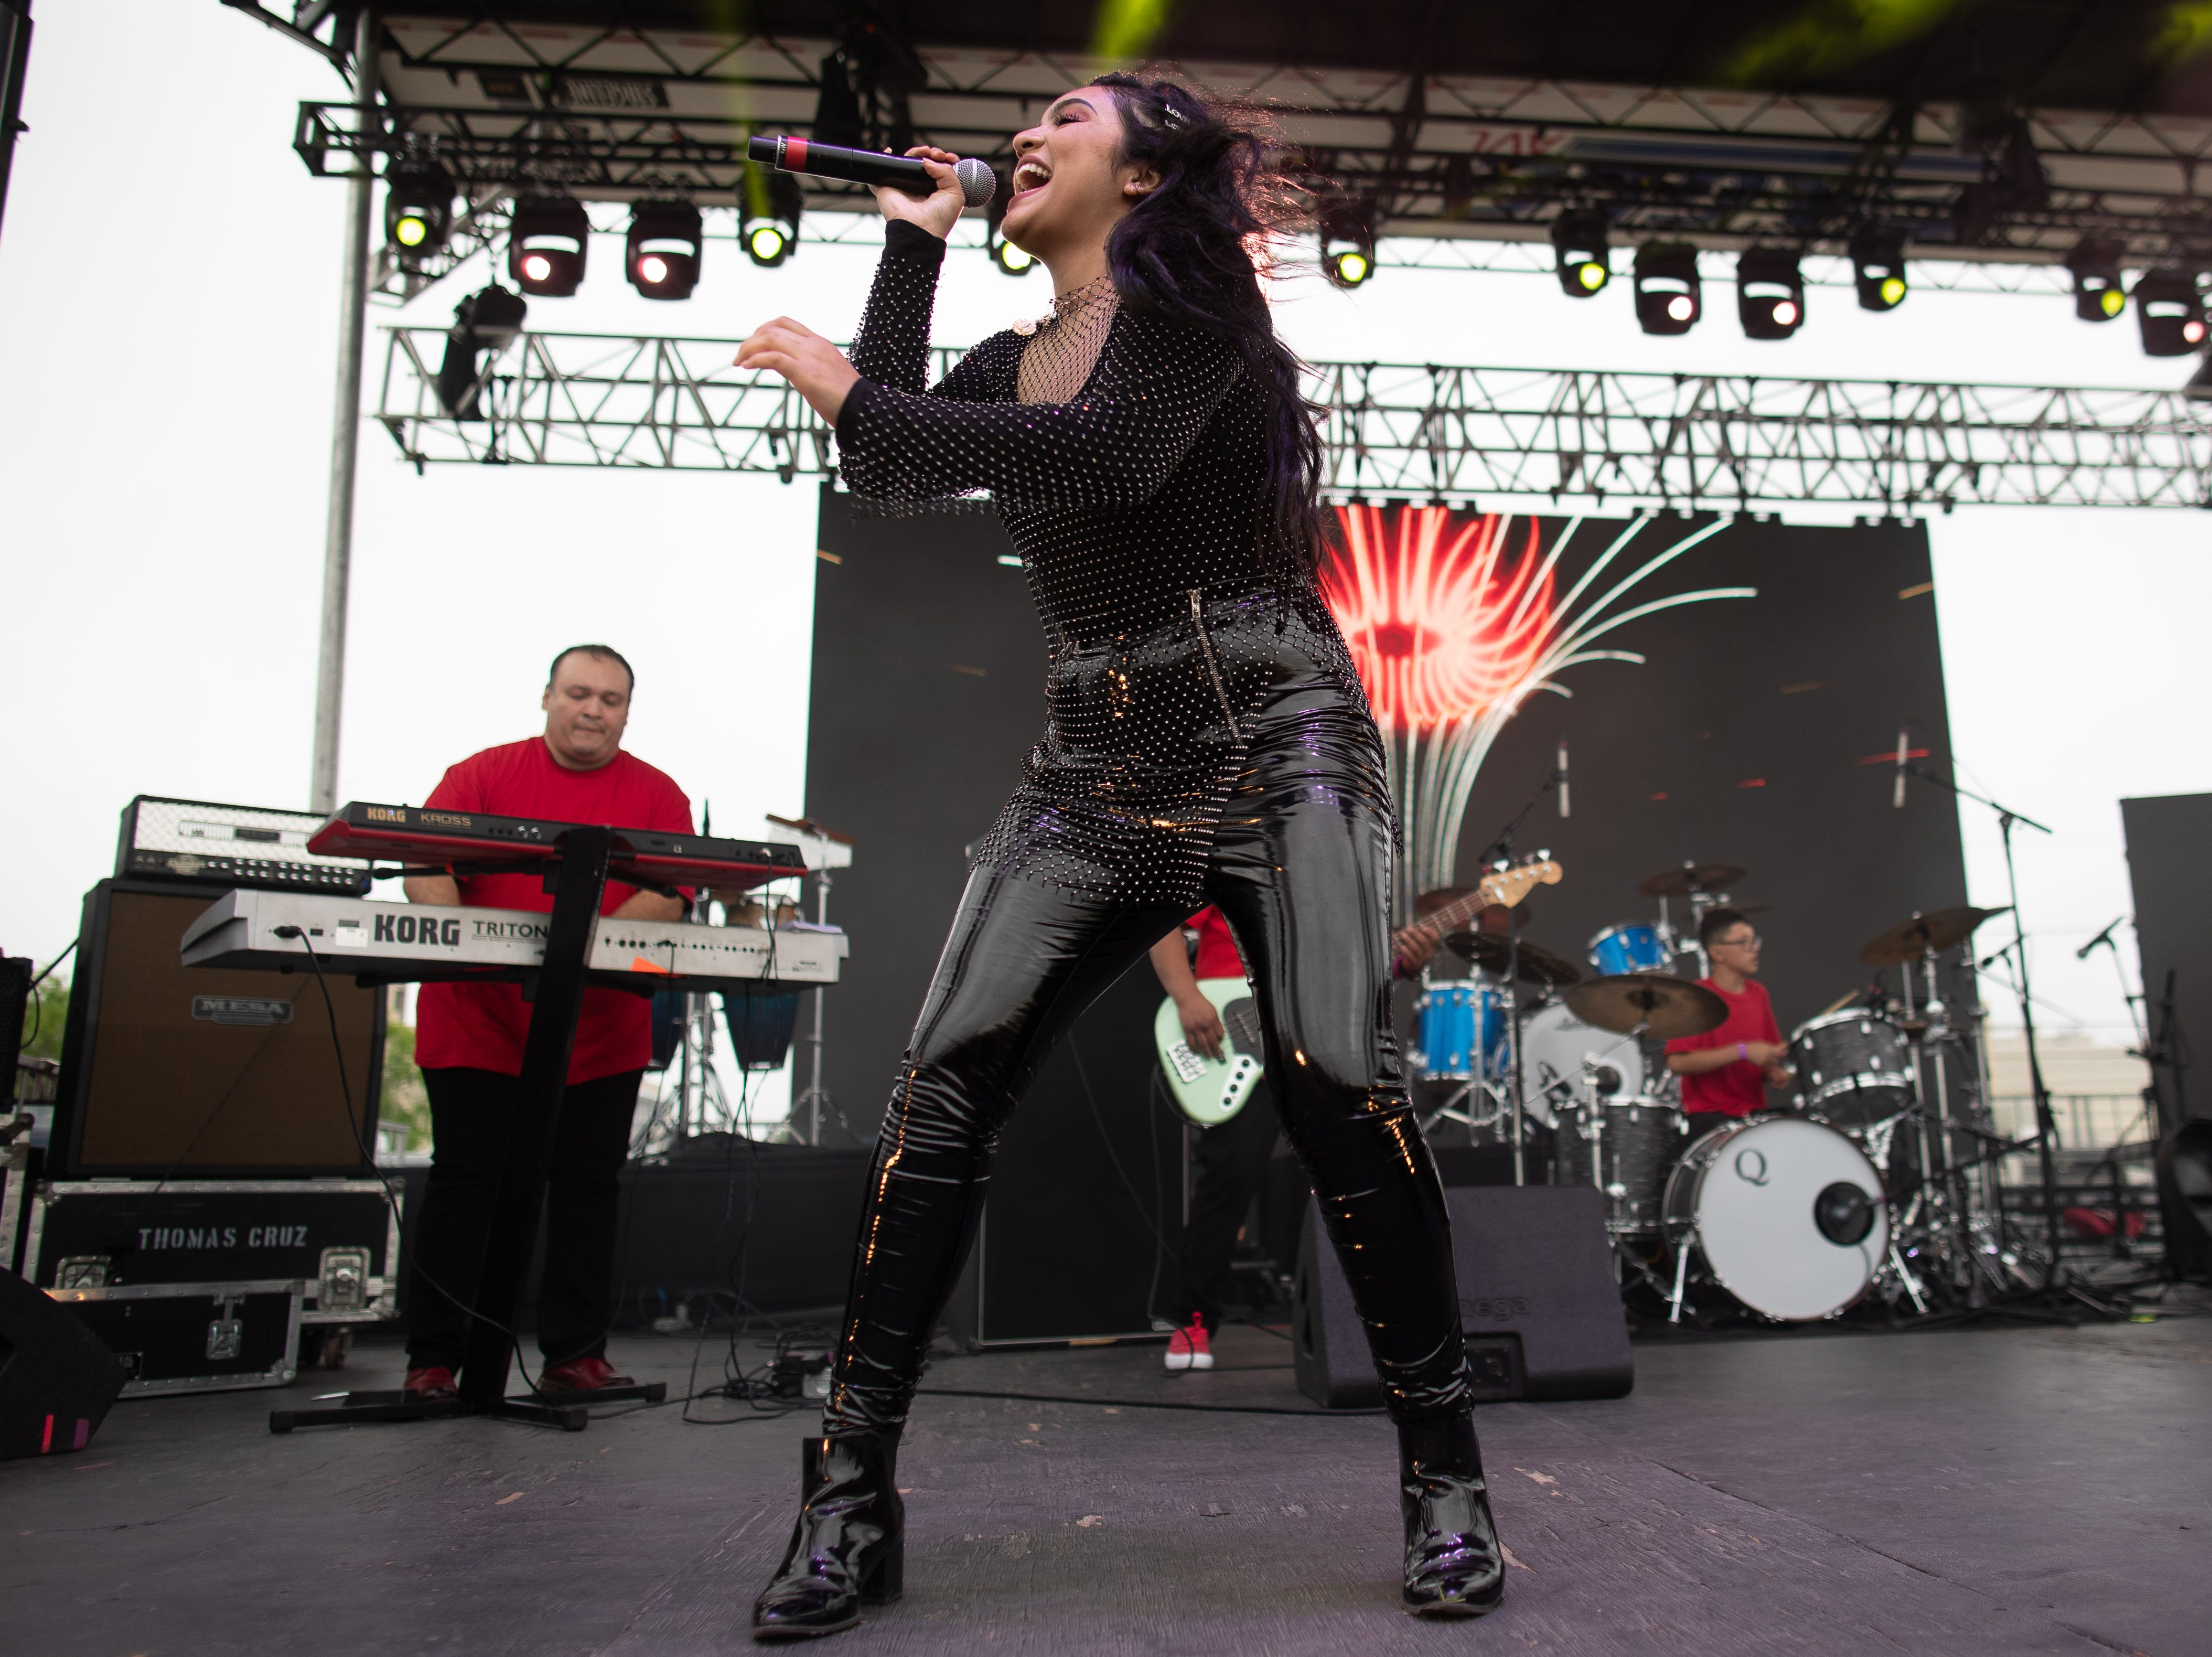 Isabel Mrez performs during the first day of Fiesta de la Flor on Friday, April 12, 2019.